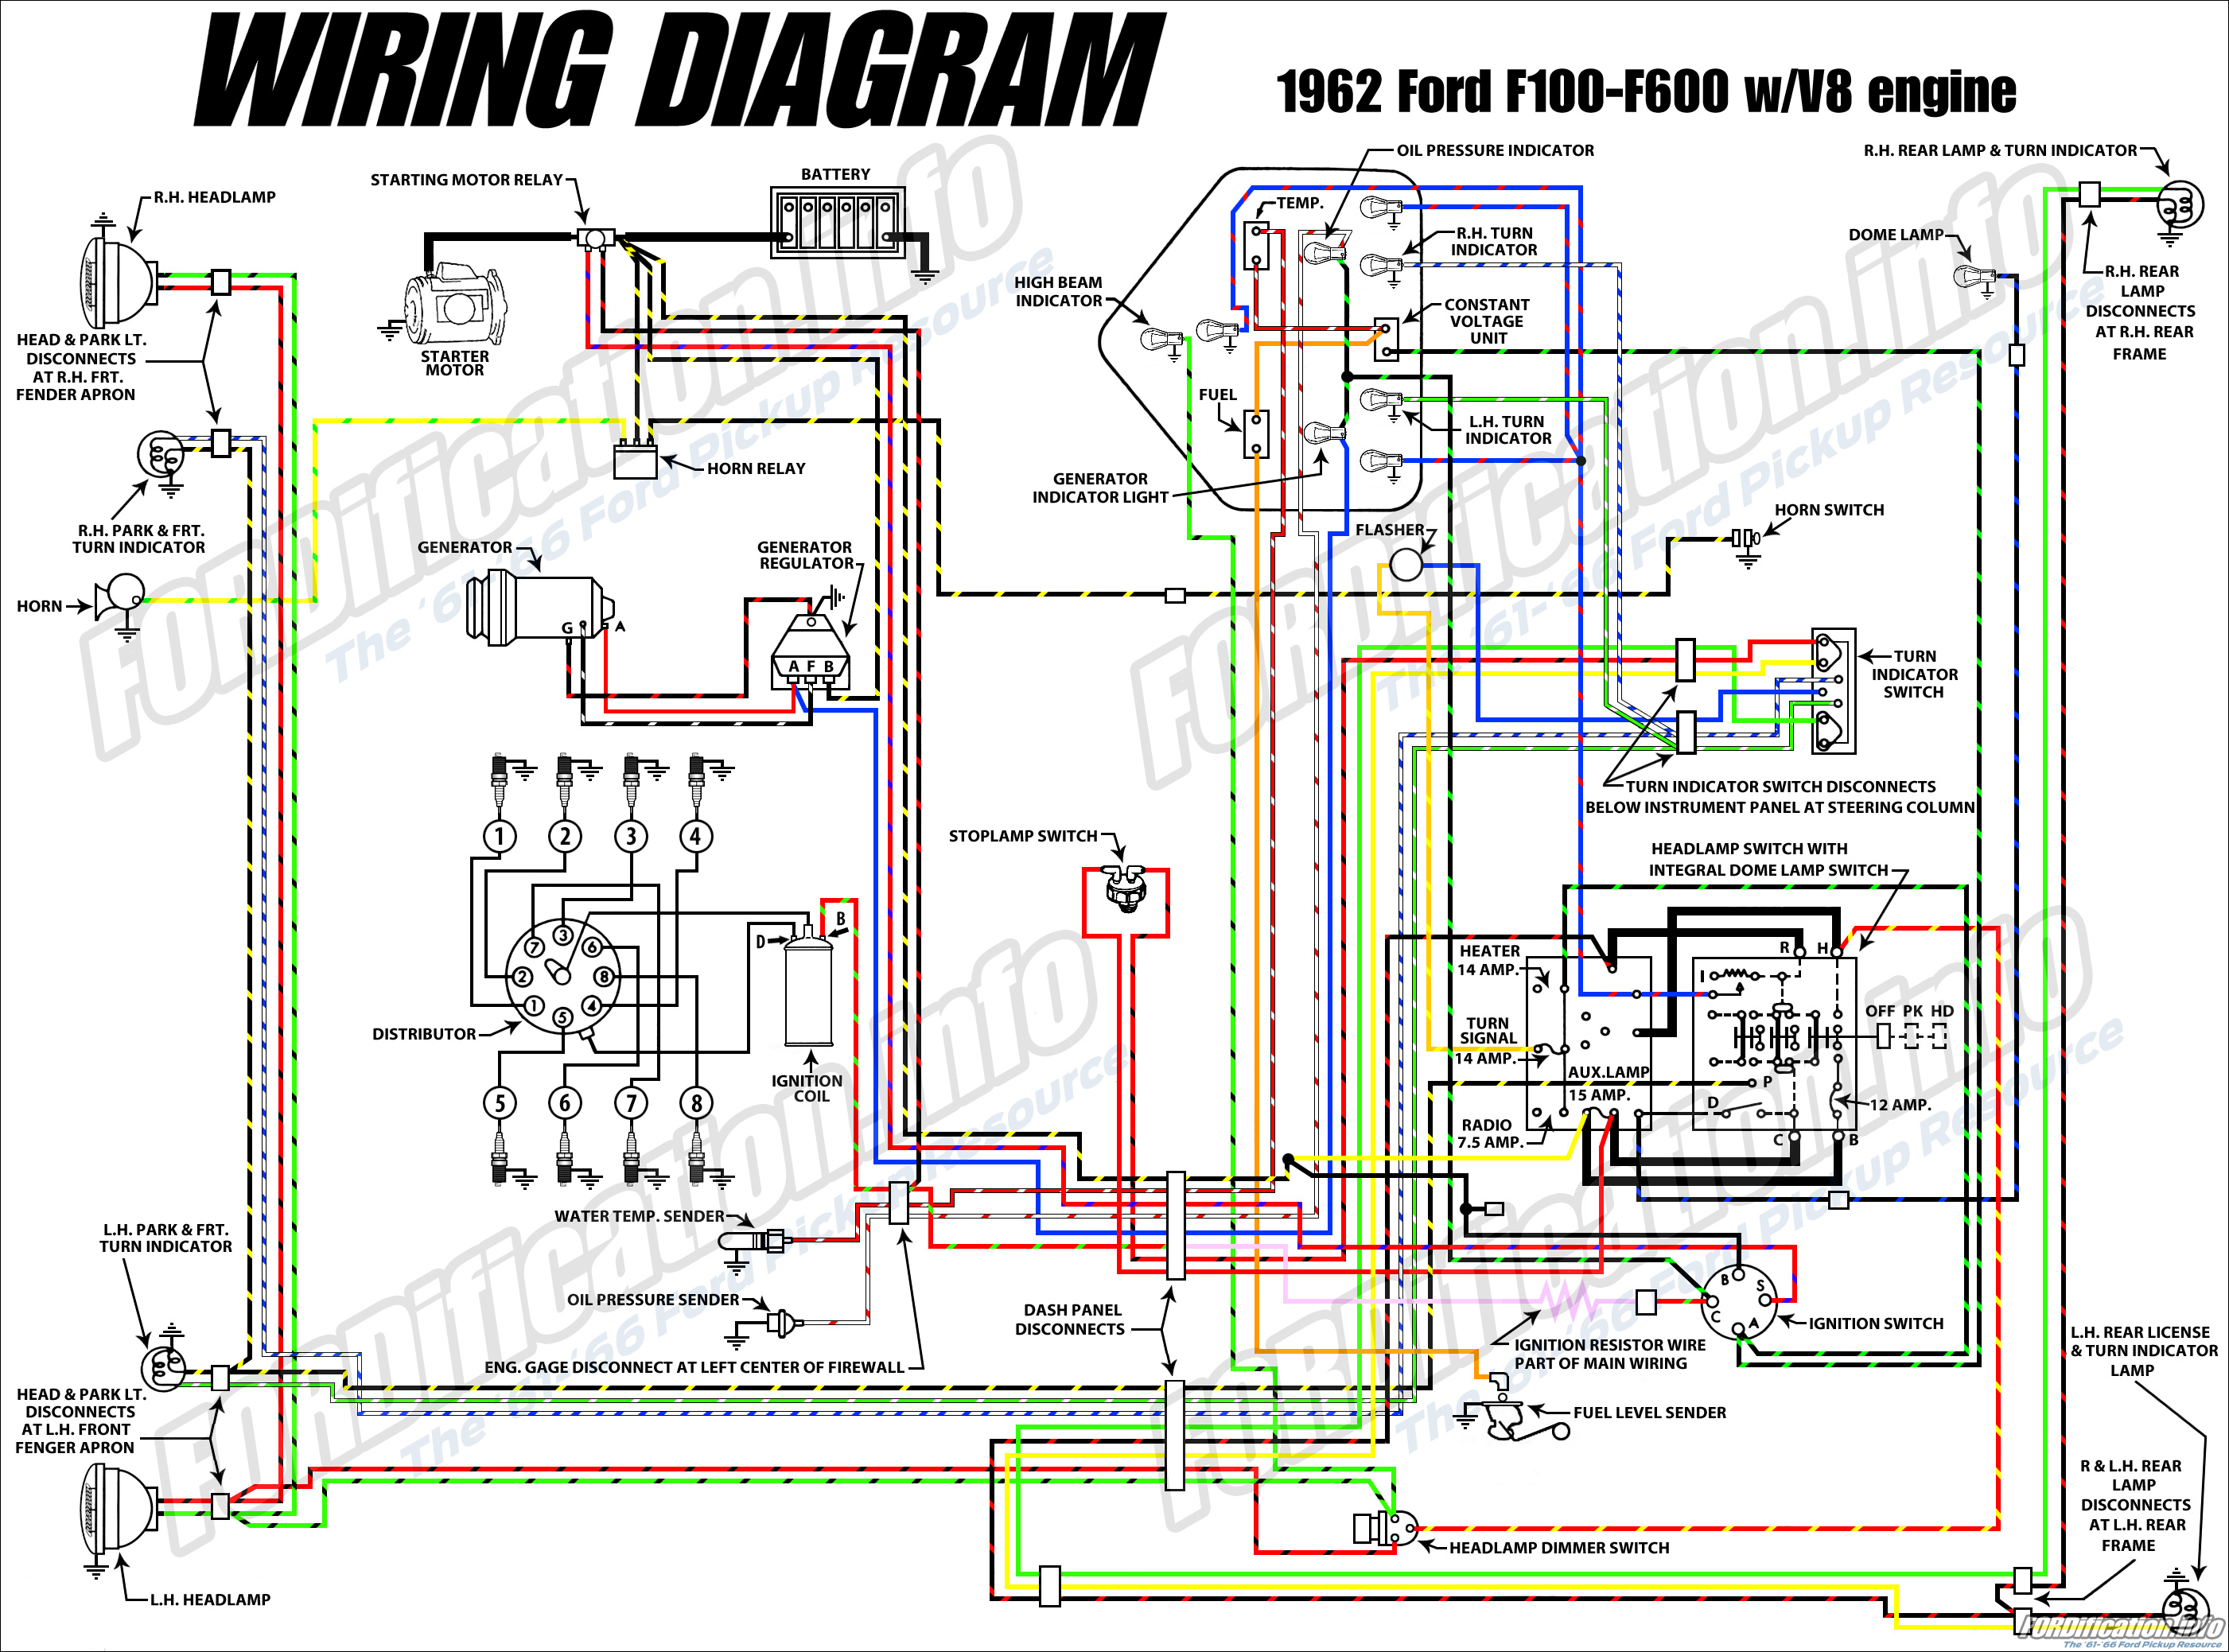 [SCHEMATICS_4JK]  DIAGRAM] 1966 Ford Pickup Wiring Diagram FULL Version HD Quality Wiring  Diagram - THROATDIAGRAM.SAINTMIHIEL-TOURISME.FR | 1966 Ford Truck Wiring Diagram |  | Saintmihiel-tourisme.fr